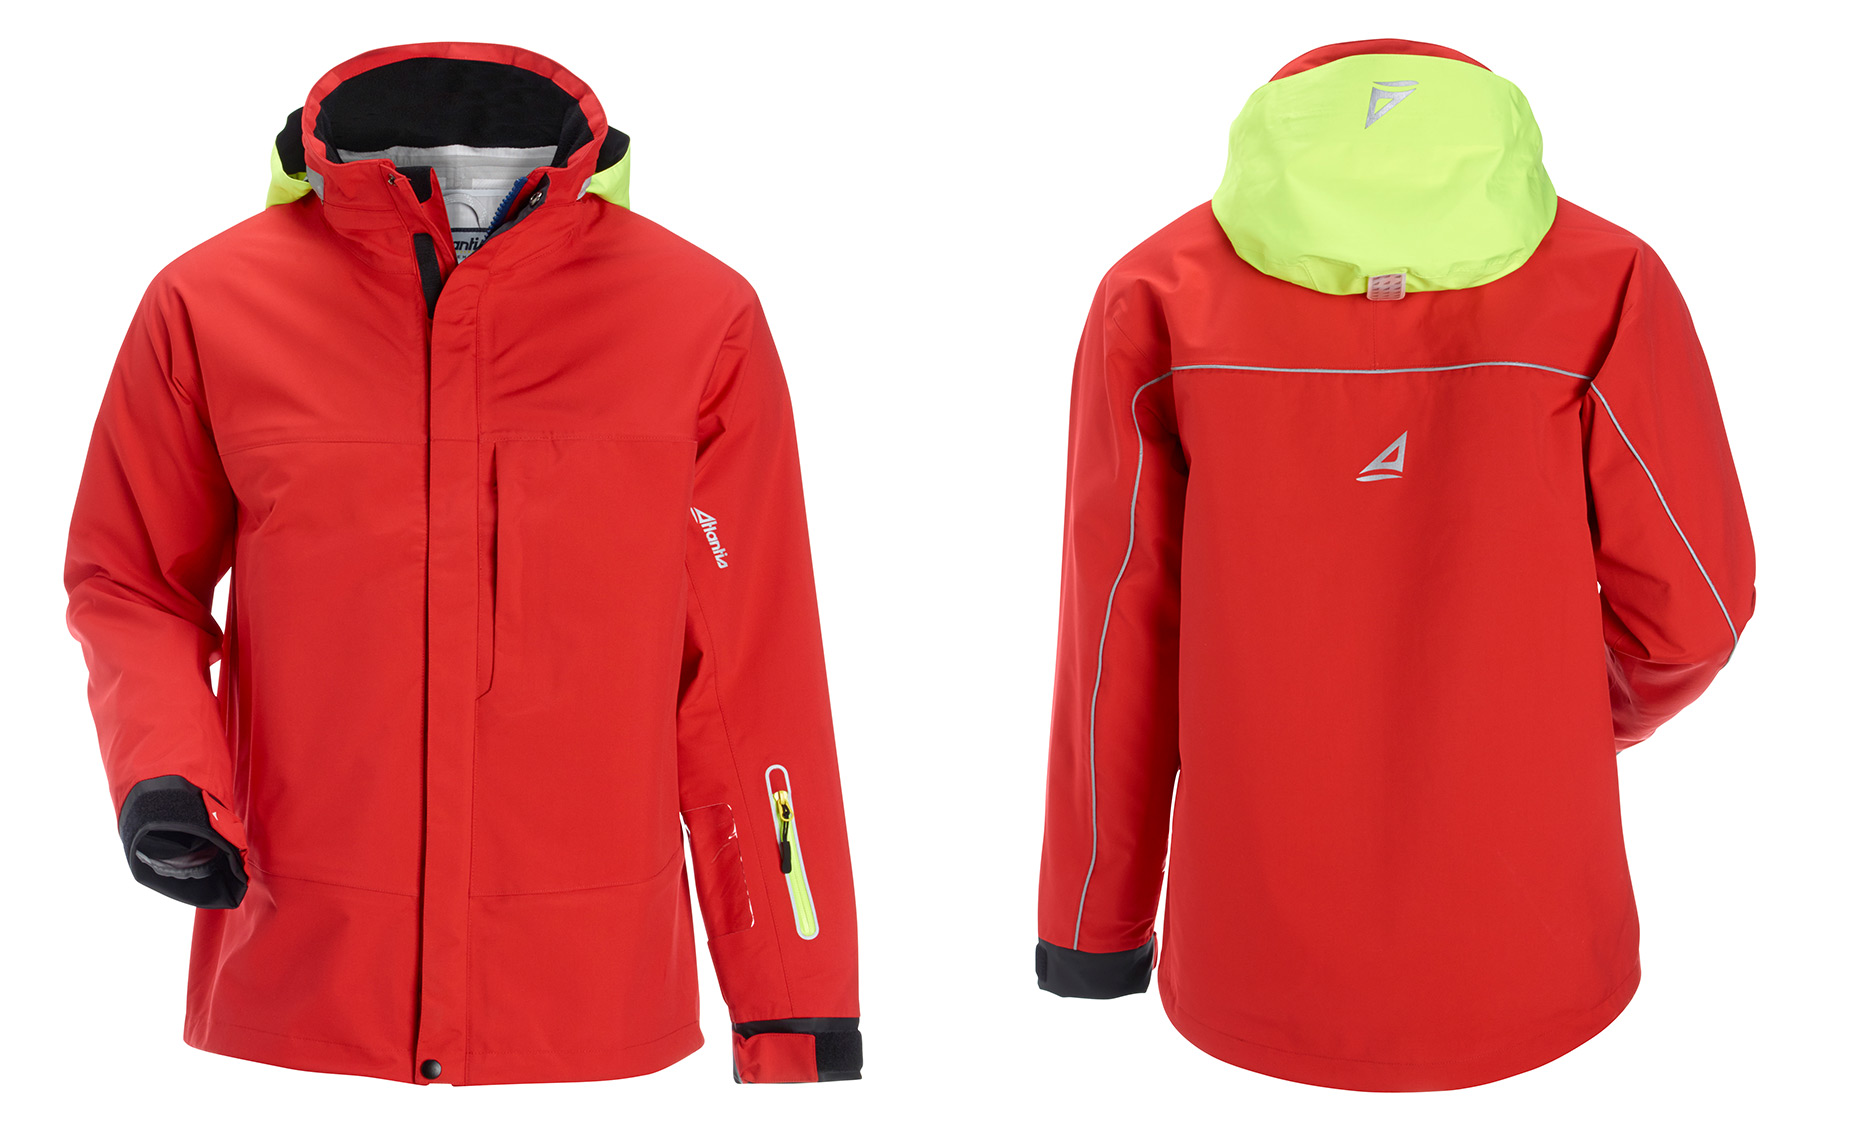 Atlantis Aegis Jacket Front and Back-IP